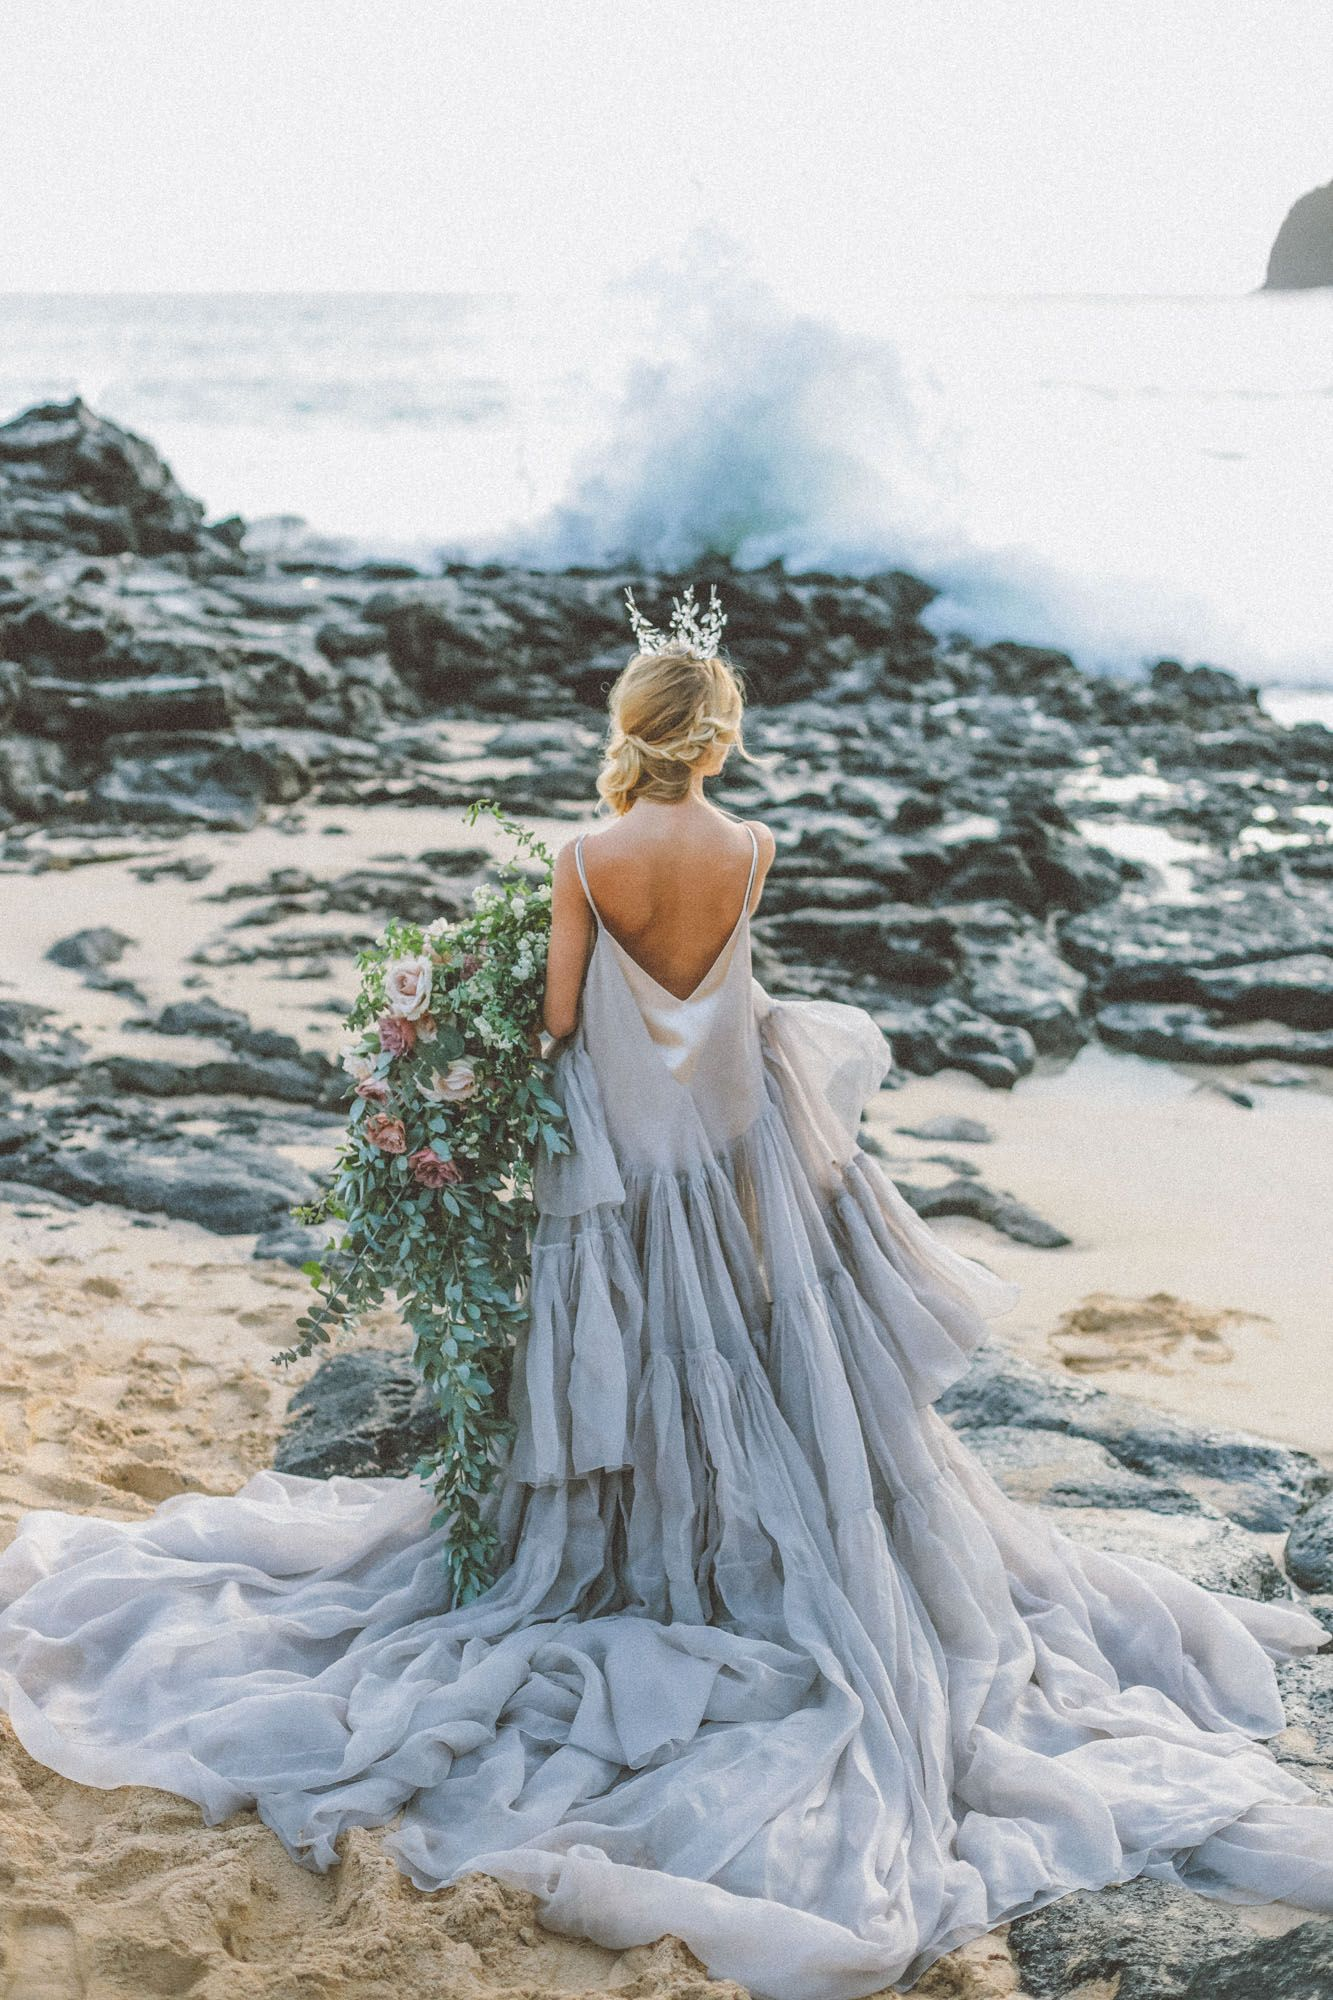 angie diaz hawaii wedding photographer for the romantic wild